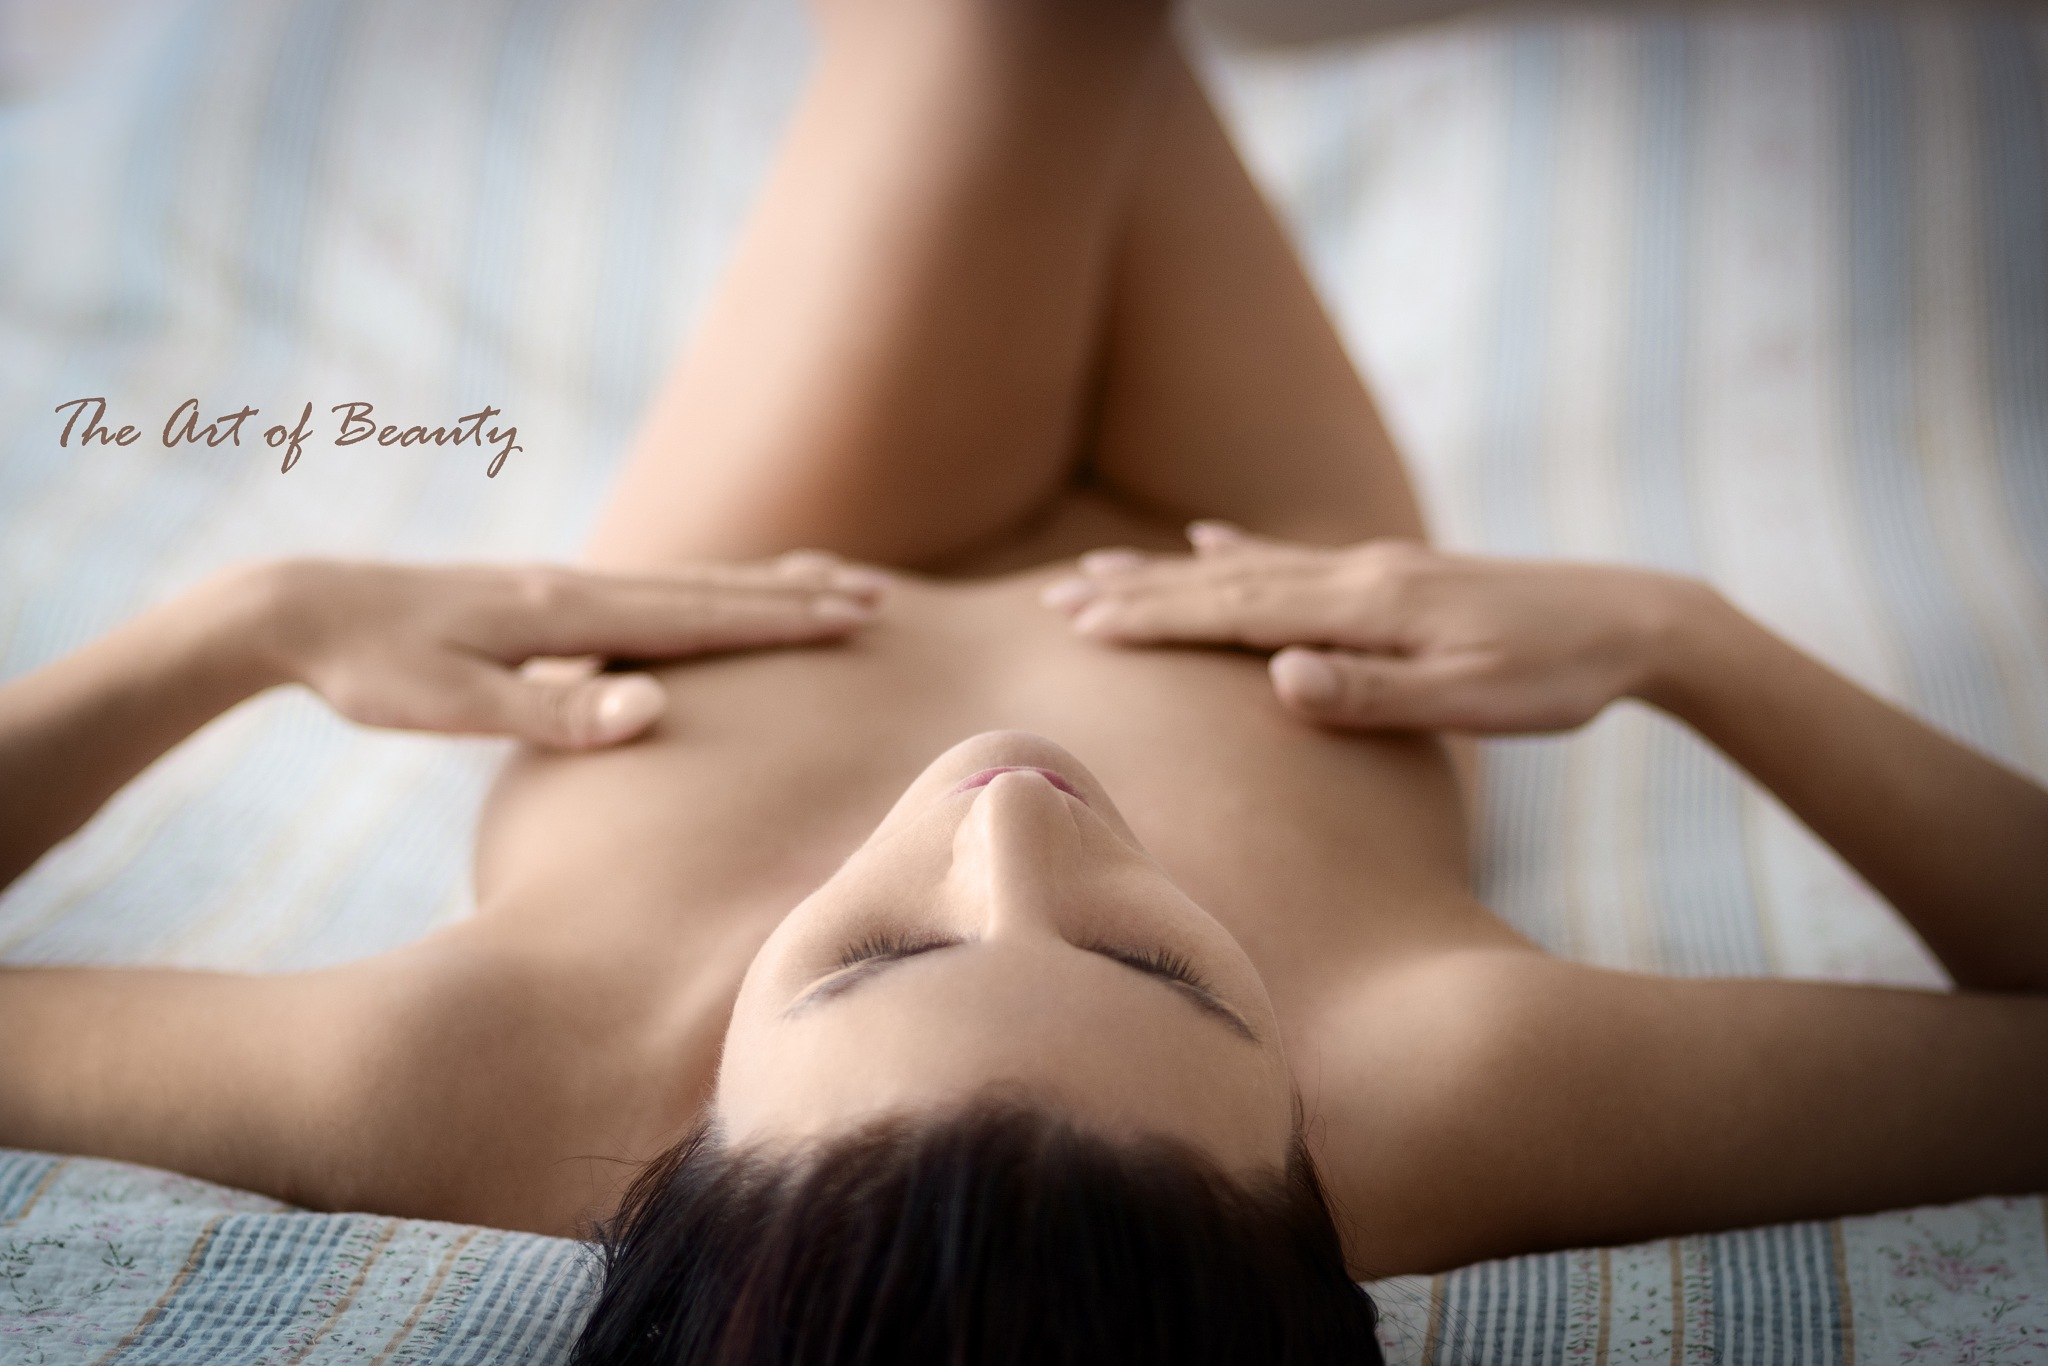 Lying on the bed #2 by The Art Of Beauty